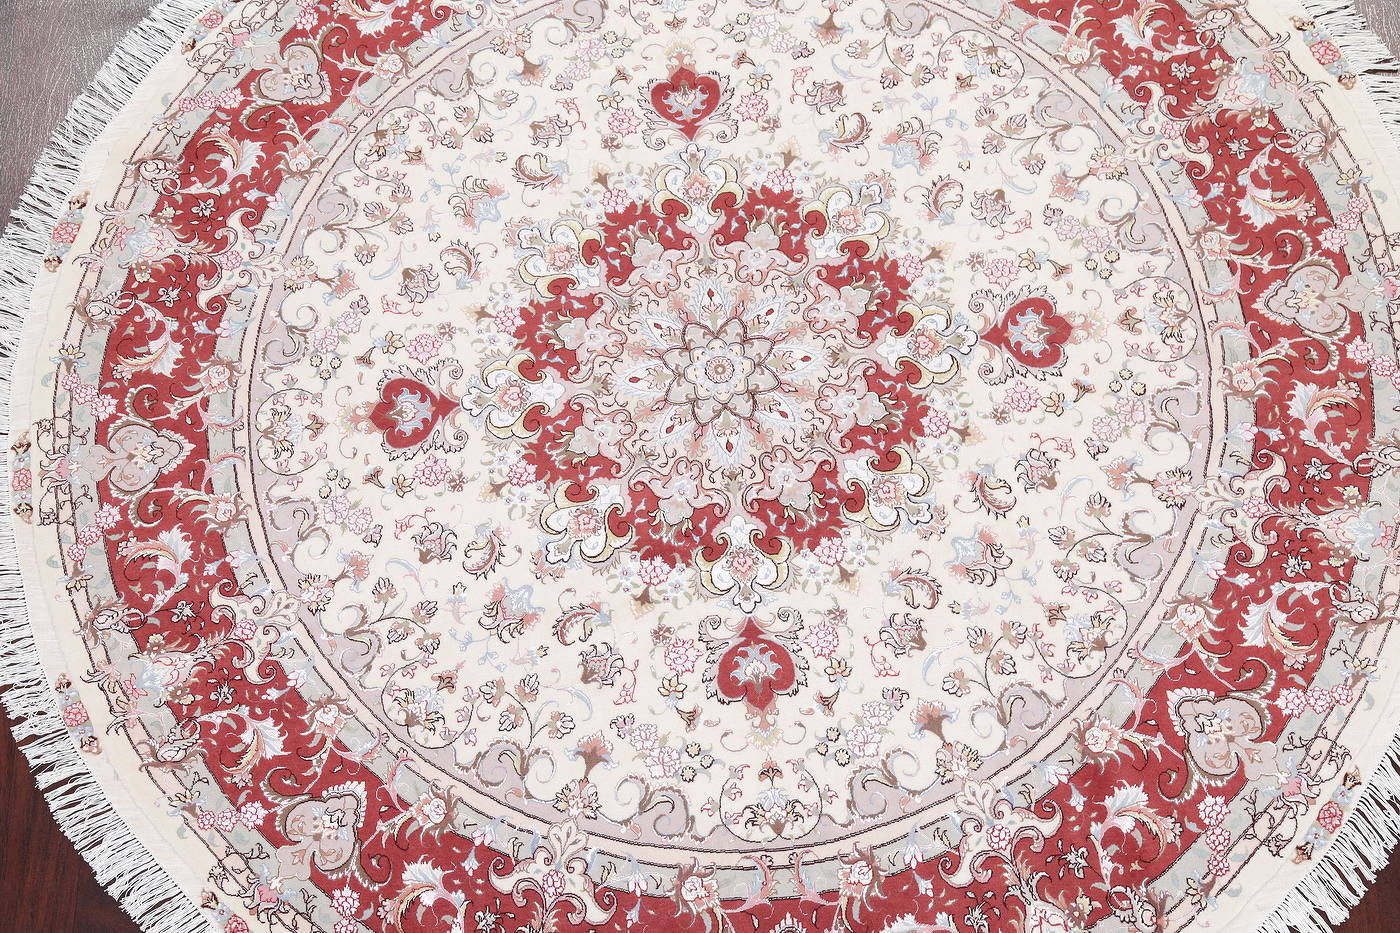 Ivory Floral Tabriz Persian Round Rug 9'x9' image 3